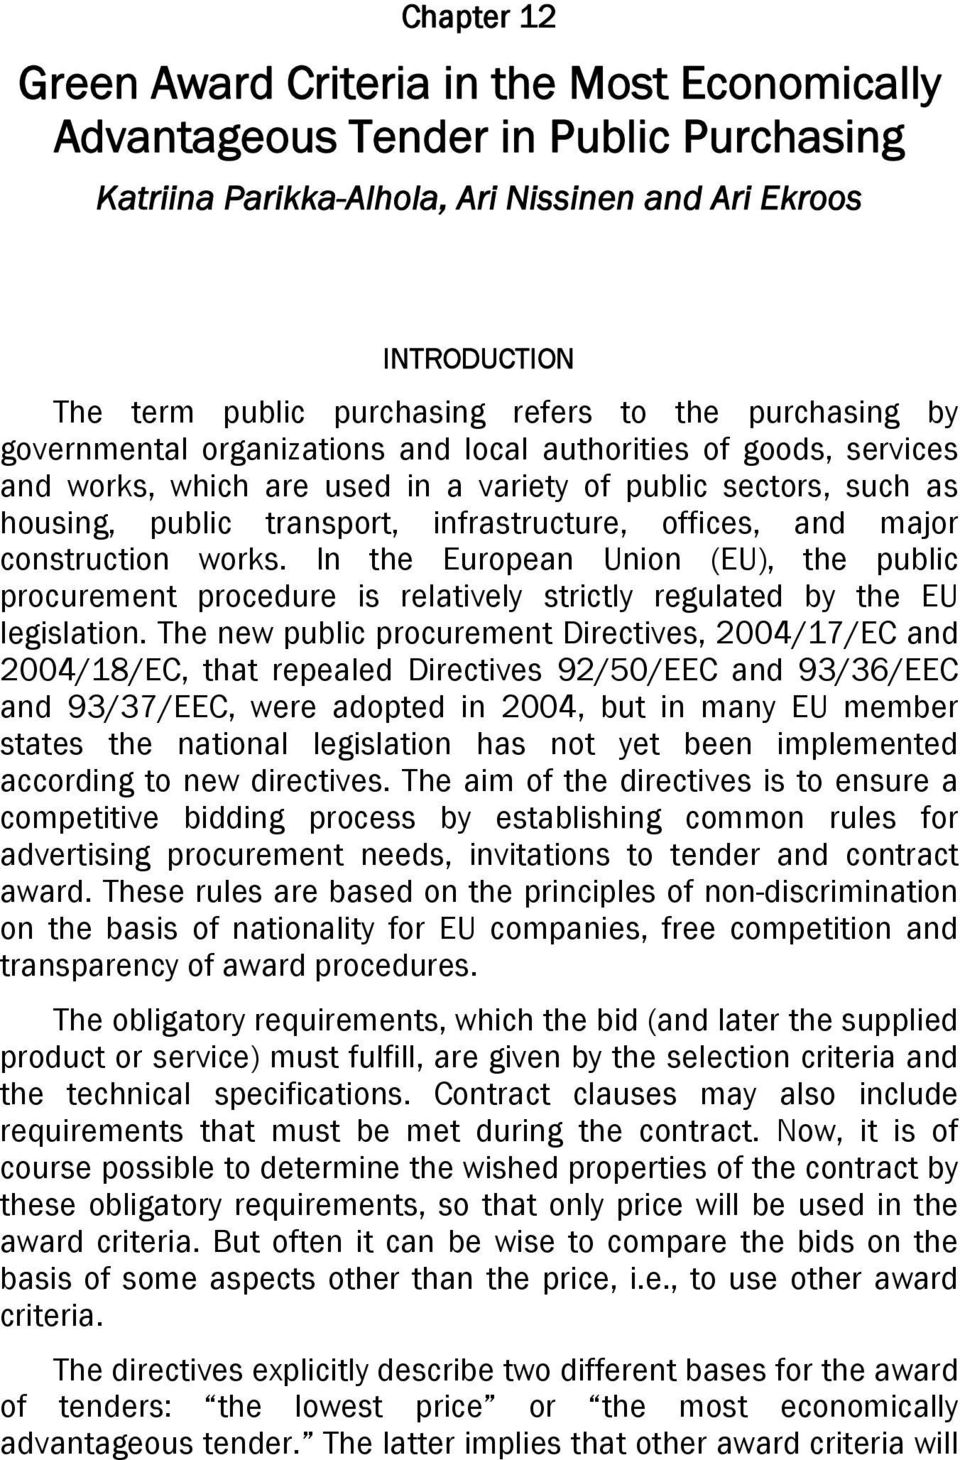 offices, and major construction works. In the European Union (EU), the public procurement procedure is relatively strictly regulated by the EU legislation.